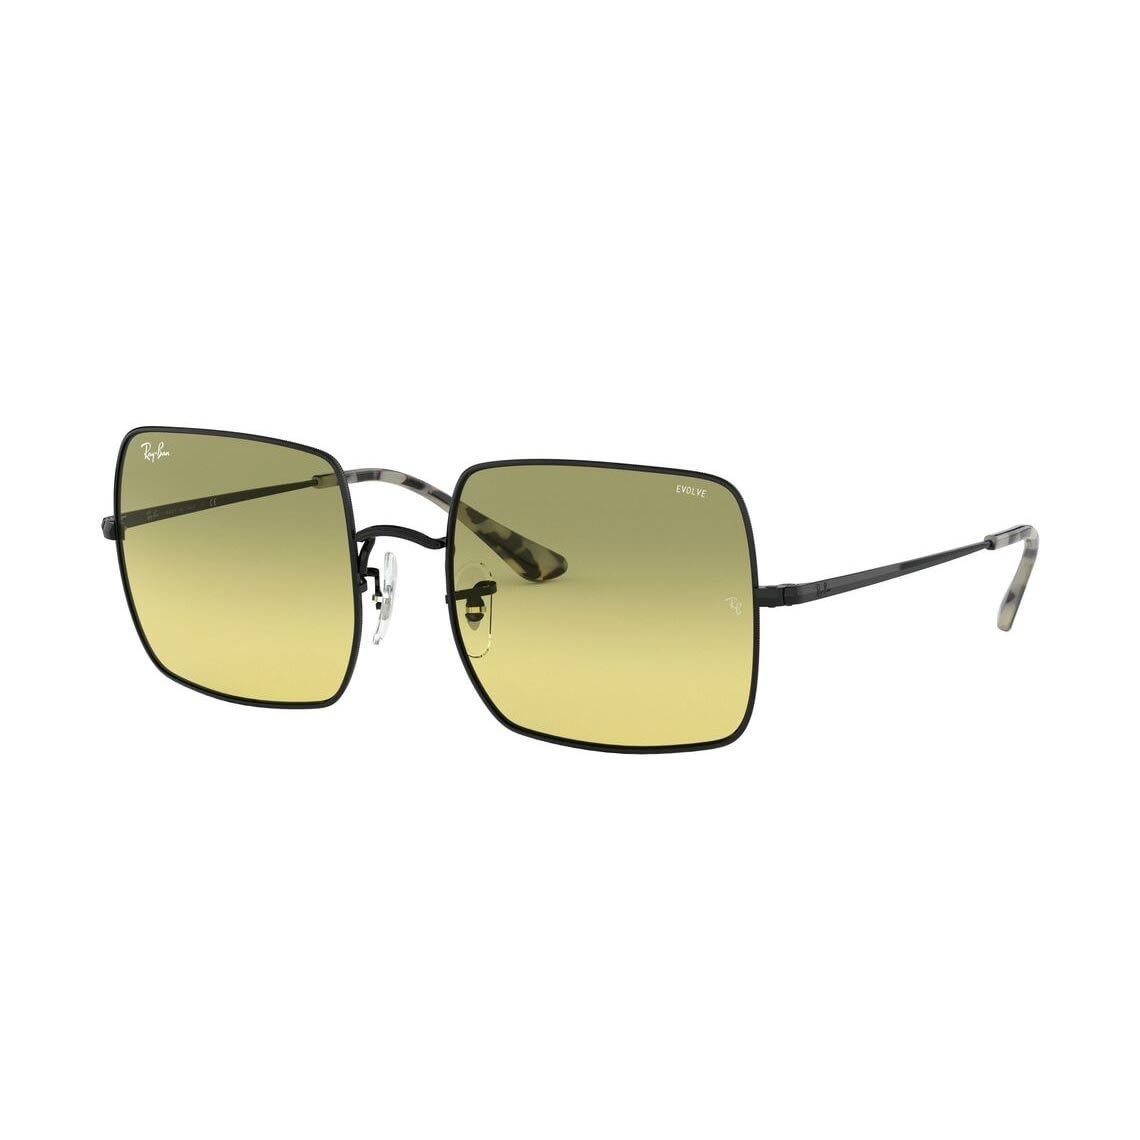 Ray-Ban  Square 1971 Washed Evolve RB1971 9152AB 5419